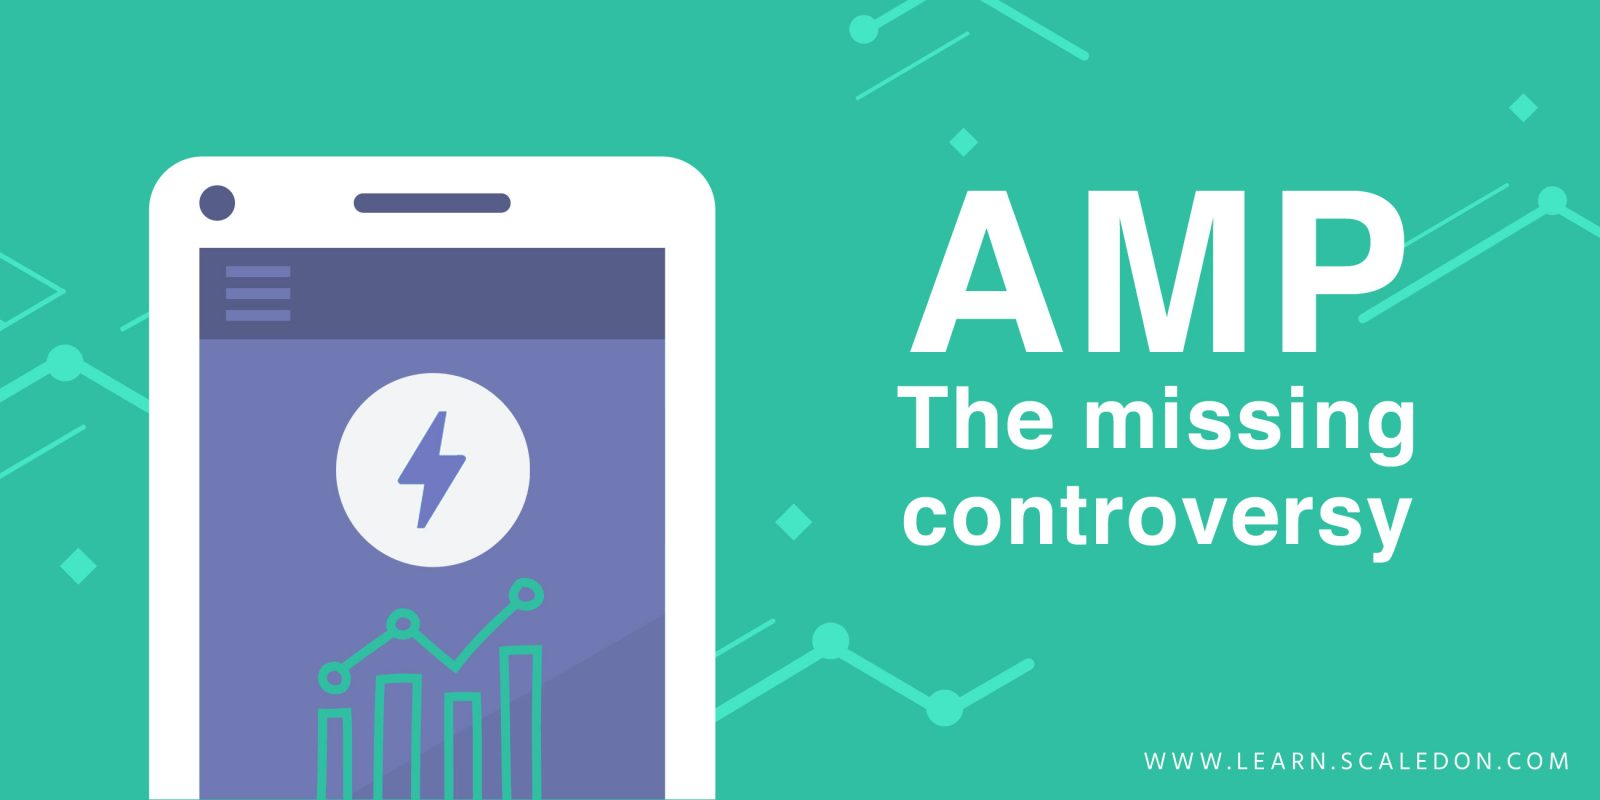 AMP The missing controversy